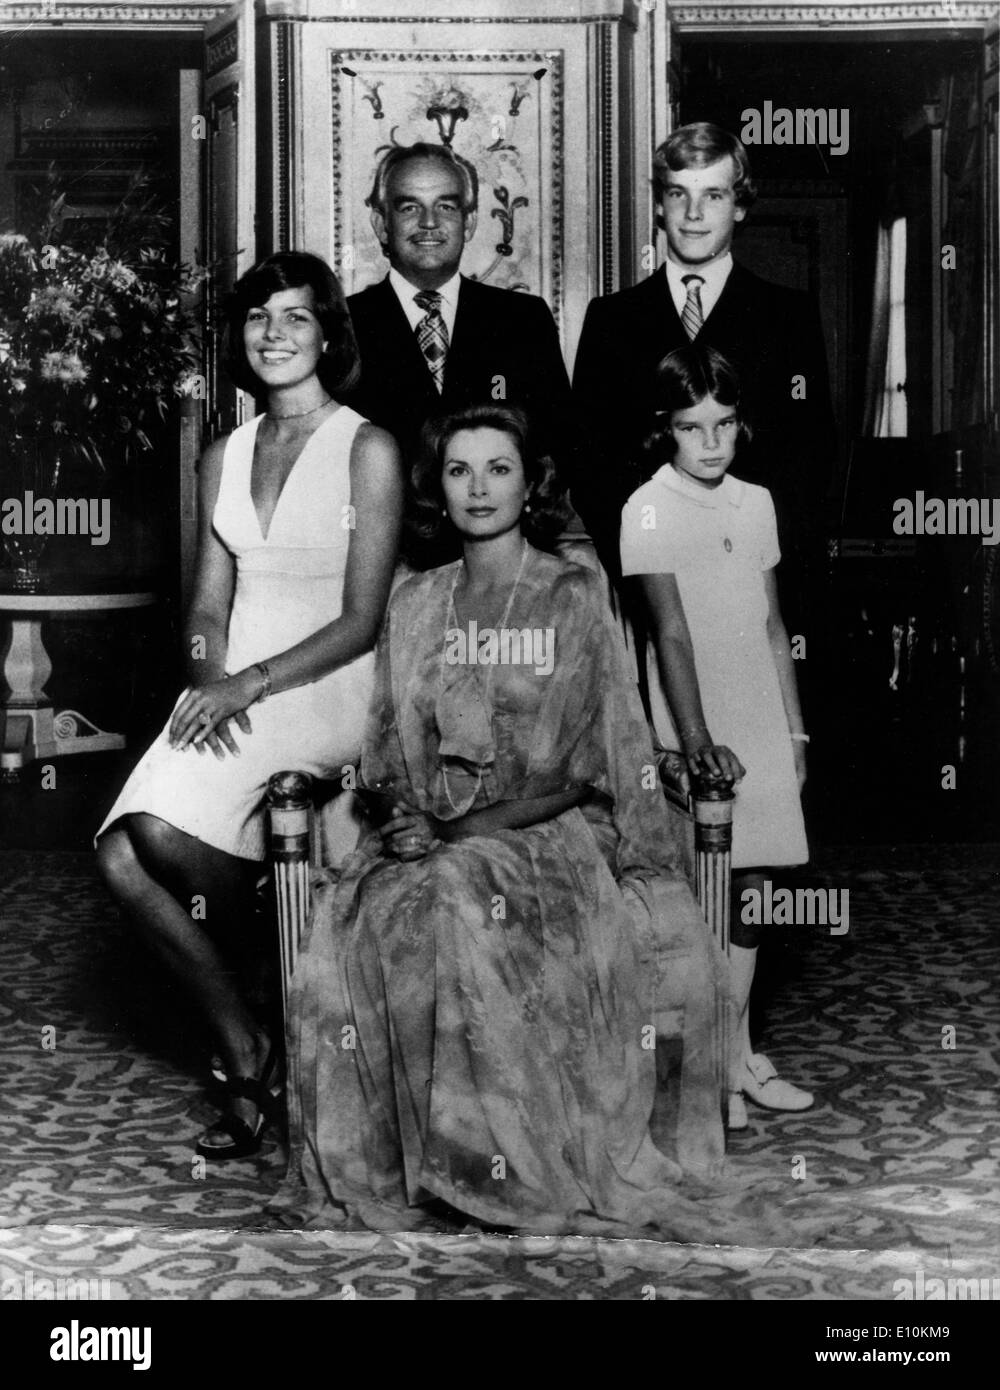 Monaco - PRINCE RAINIER and American film actress PRINCESS GRACE KELLY with children - Stock Image